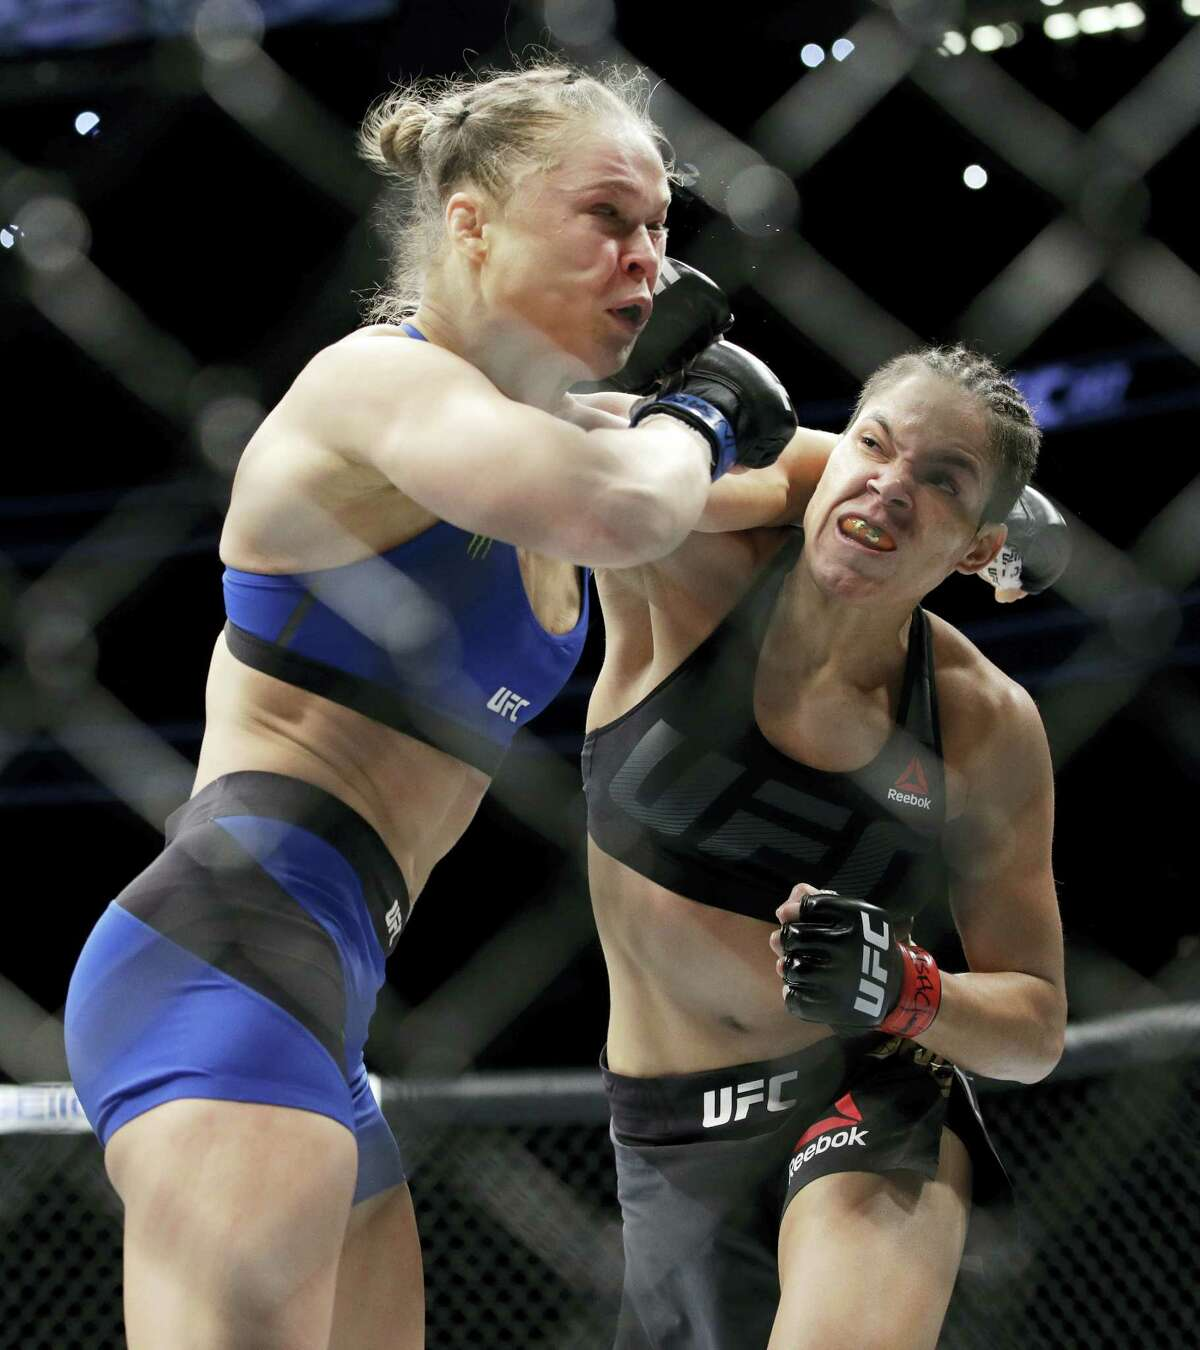 Amanda Nunes, right, connects with Ronda Rousey during the first round of their bout at UFC 207 Friday in Las Vegas.